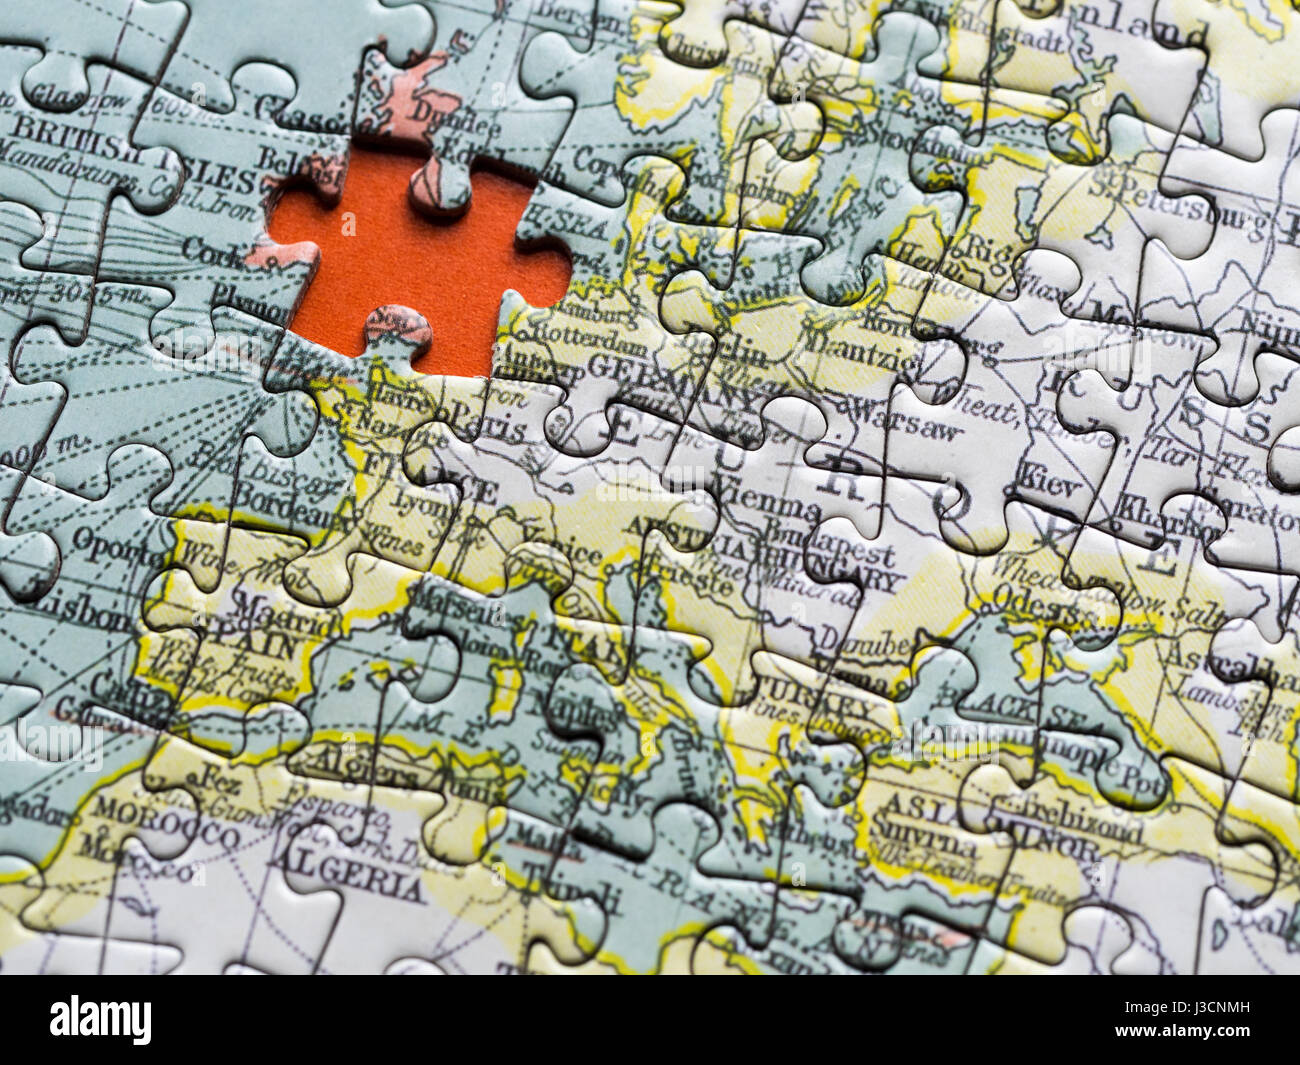 Brexit uk jigsaw piece missing from map of europe stock photo brexit uk jigsaw piece missing from map of europe gumiabroncs Images